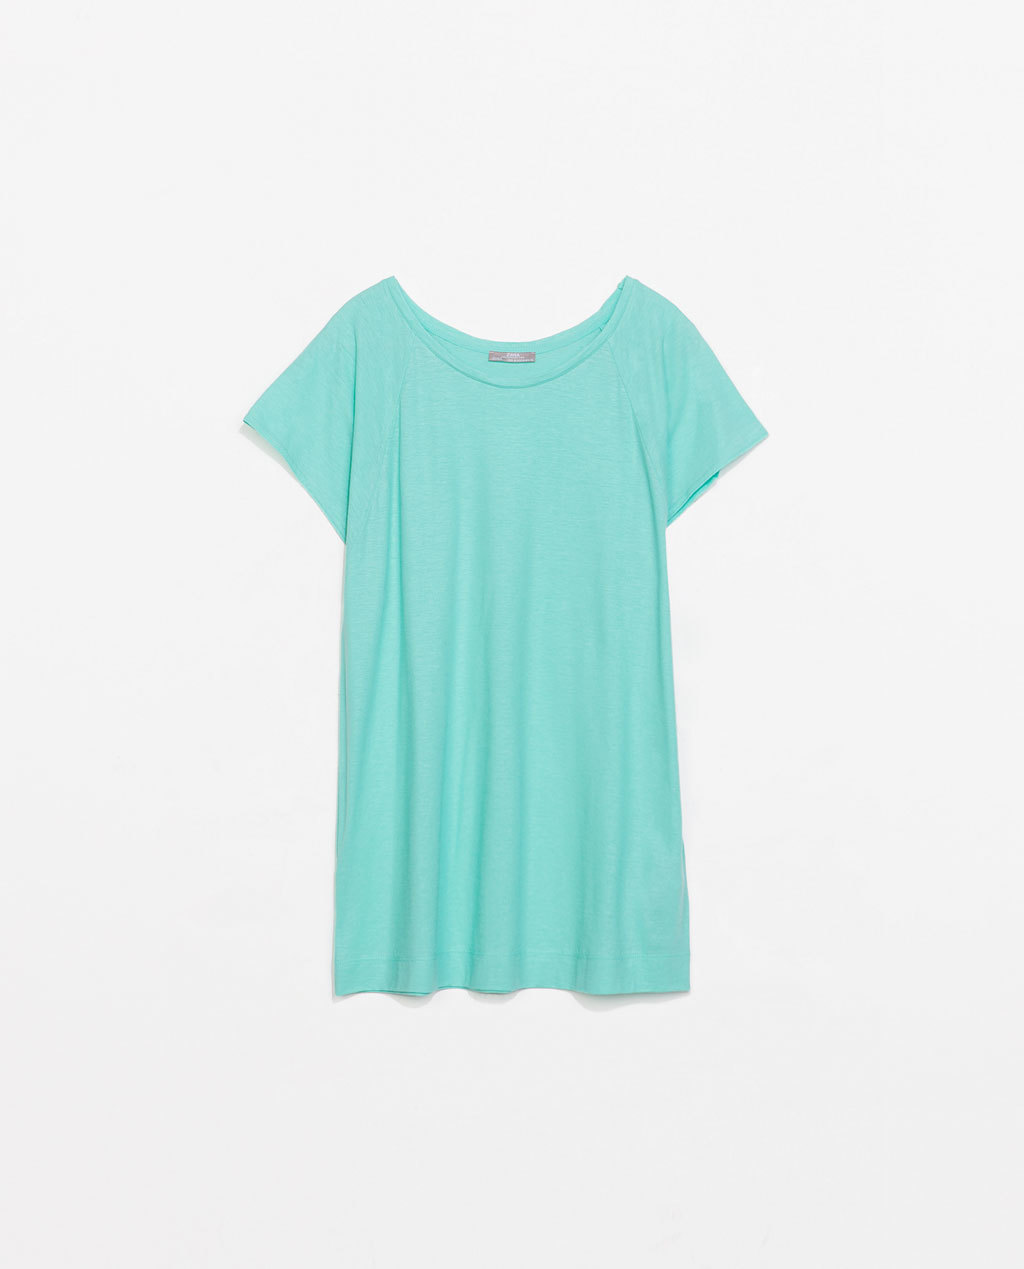 Raglan Sleeve T Shirt - neckline: round neck; pattern: plain; length: below the bottom; style: t-shirt; predominant colour: turquoise; occasions: casual, holiday; fibres: cotton - 100%; fit: loose; sleeve length: short sleeve; sleeve style: standard; pattern type: fabric; texture group: jersey - stretchy/drapey; season: s/s 2014